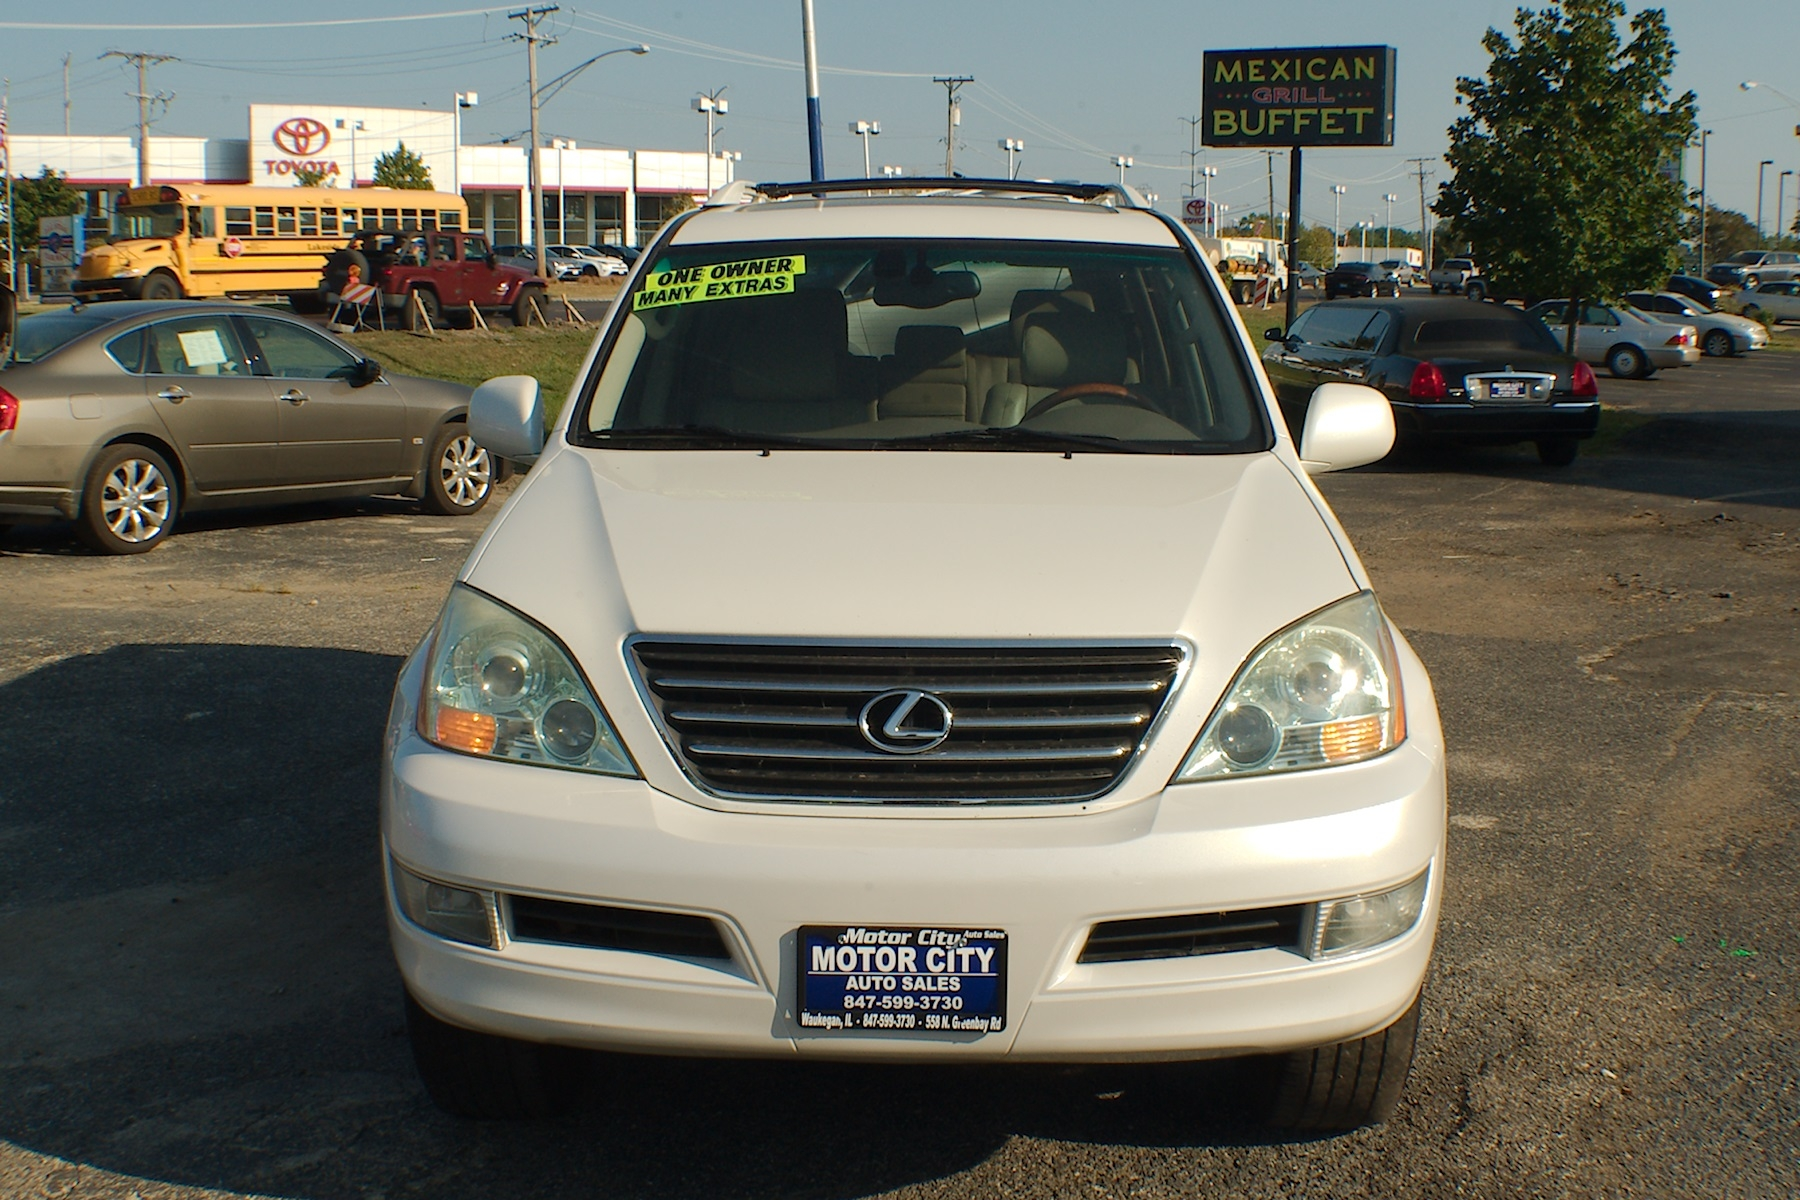 wi for view auctions title carfinder left lexus auto sale milwaukee lot gx en white in of on copart online certificate